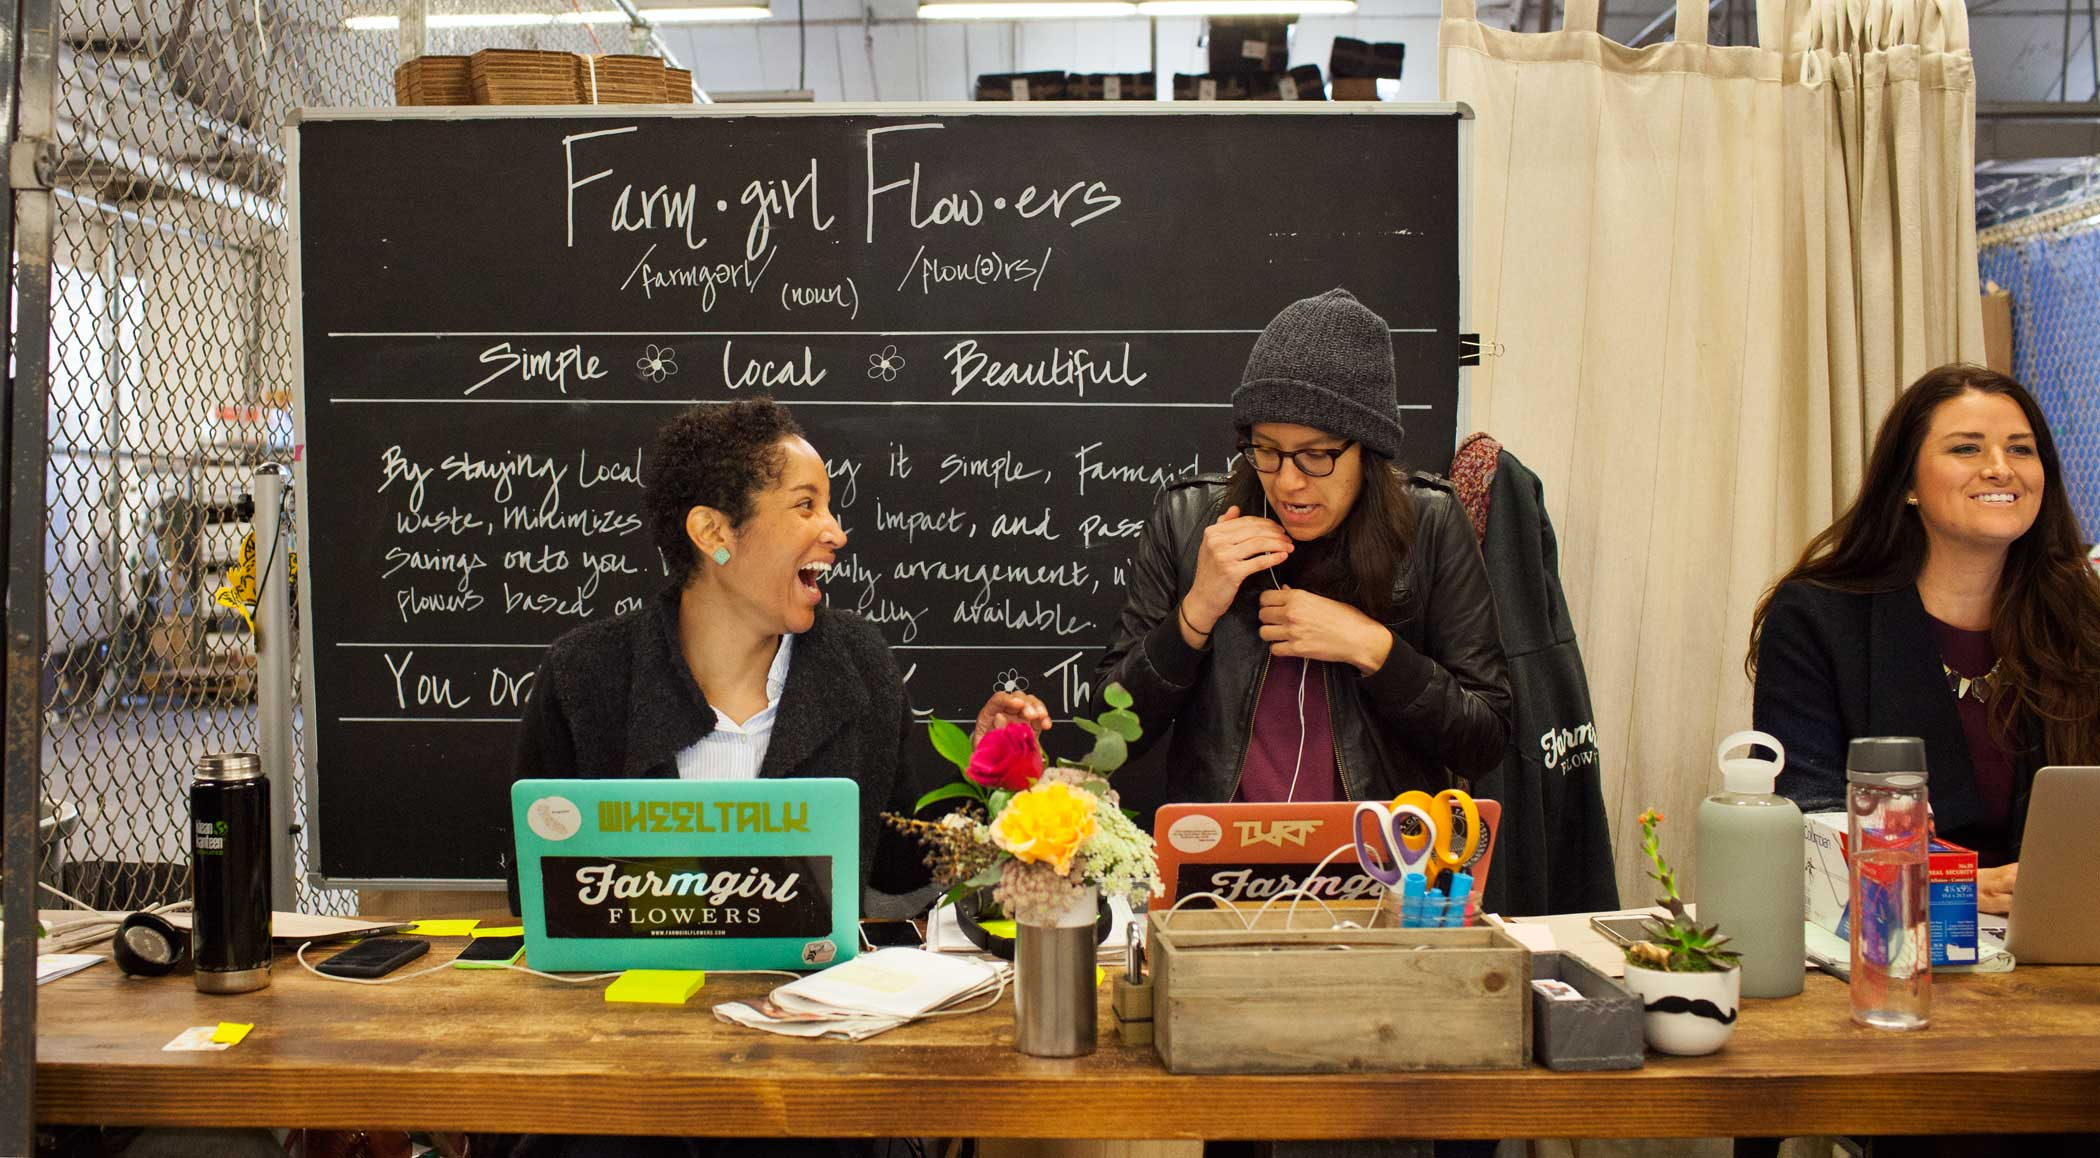 The customer service department at Farmgirl Flowers.